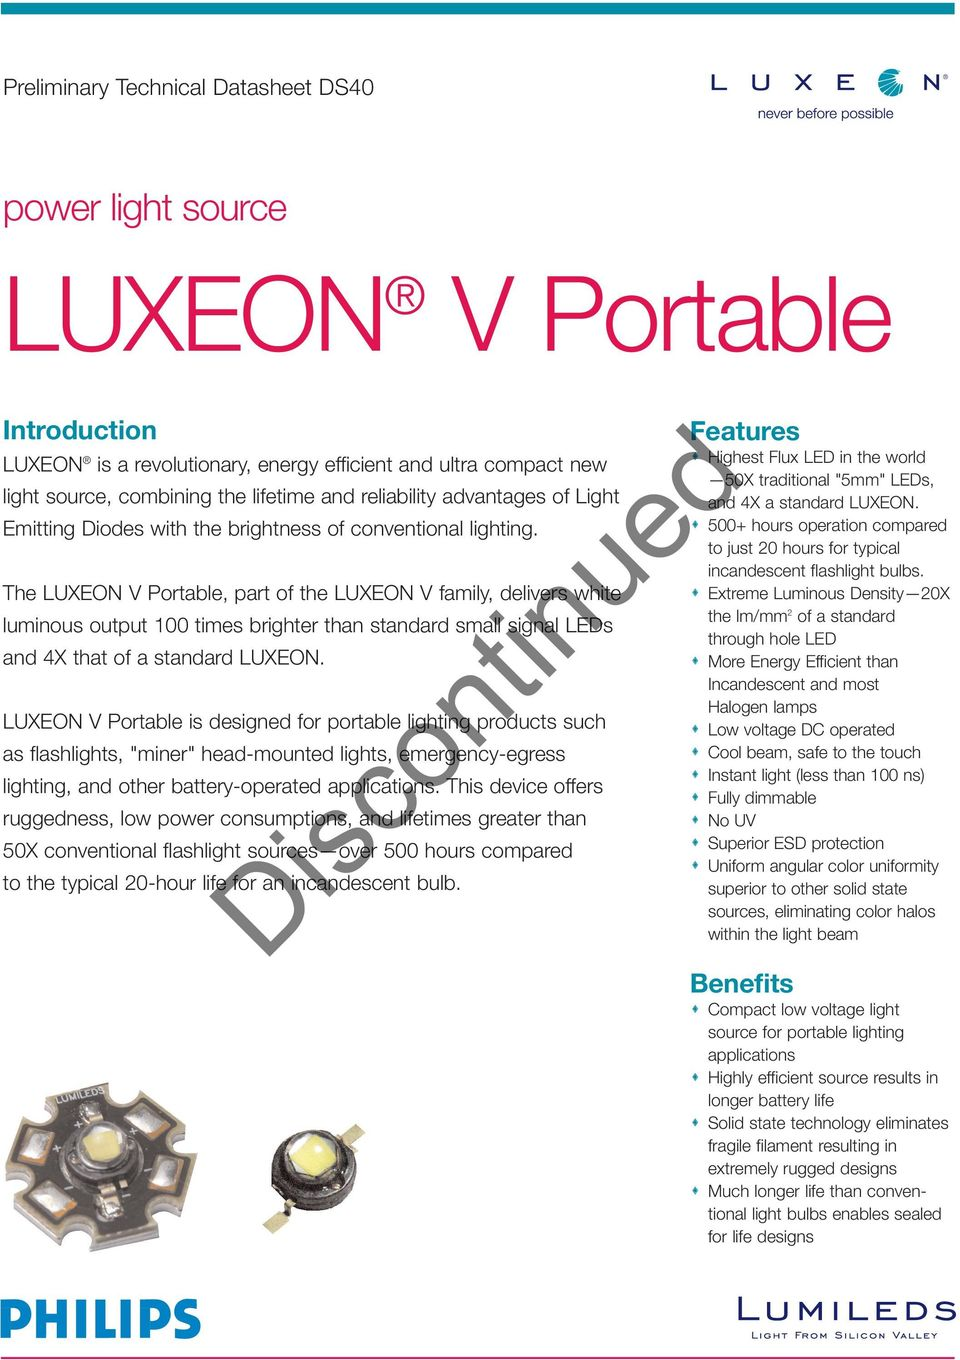 The LUXEON V Portable, part of the LUXEON V family, delivers white luminous output 100 times brighter than standard small signal LEDs and 4X that of a standard LUXEON.